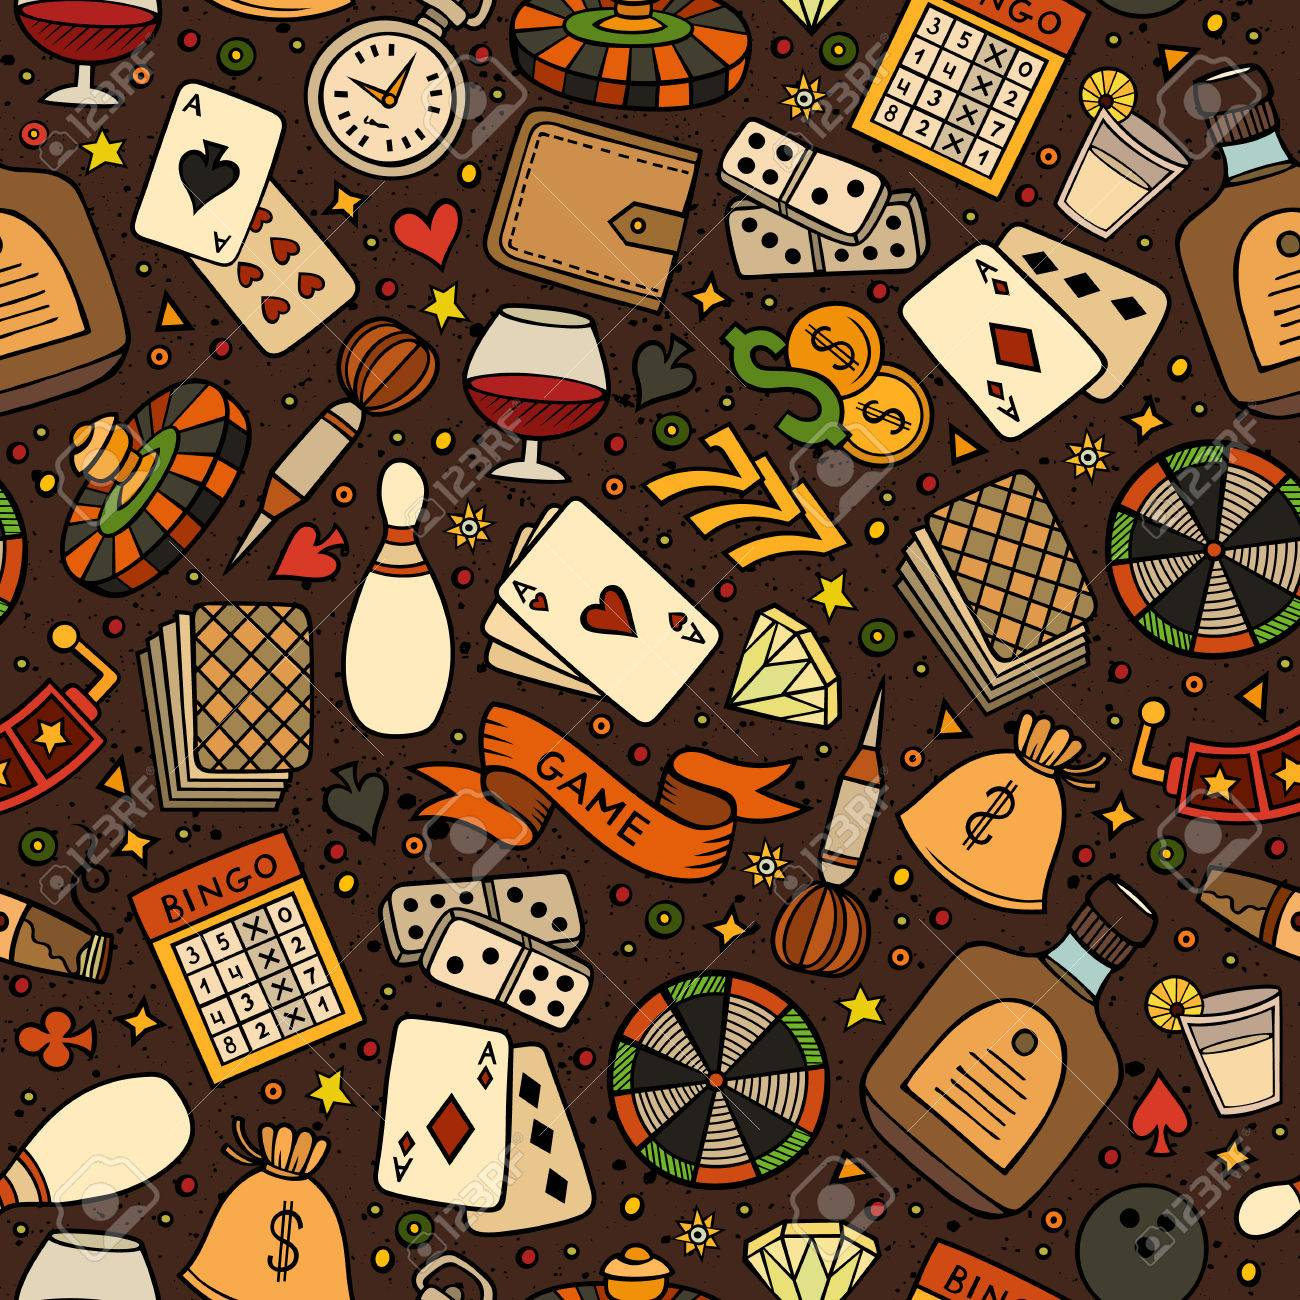 Cartoon hand-drawn casino, games seamless pattern. Lots of symbols, objects and elements. Perfect funny vector background. - 56978318